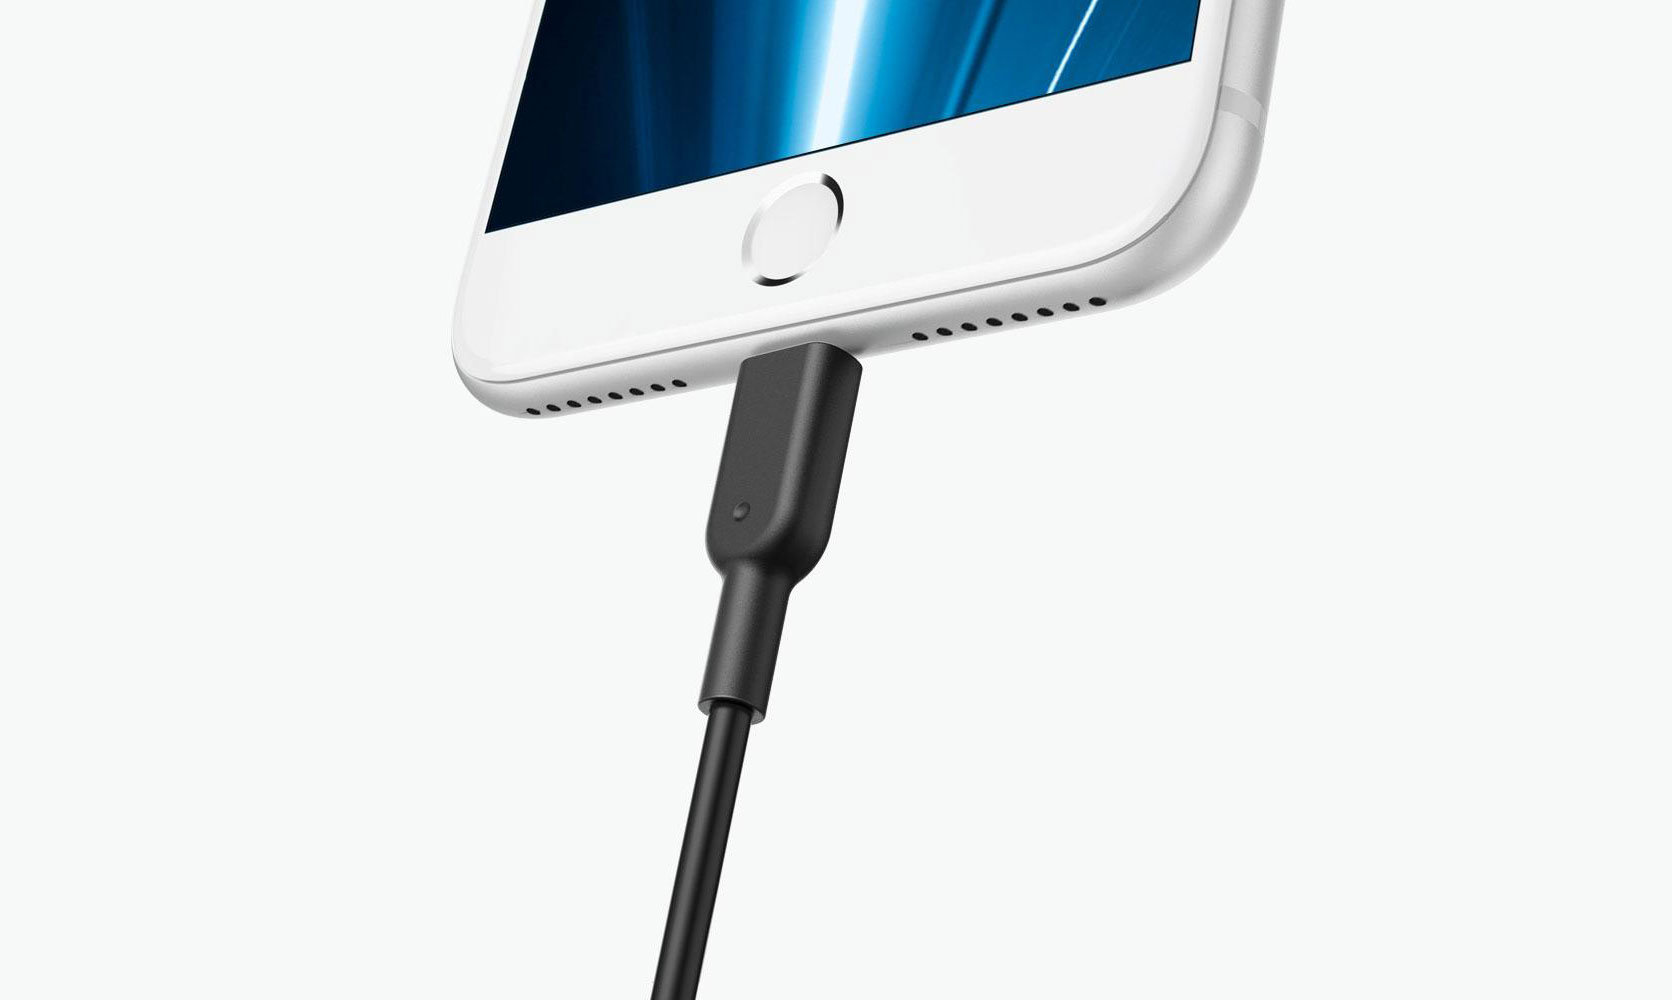 Get Anker S Powerline Ii Dura Lightning Cables With